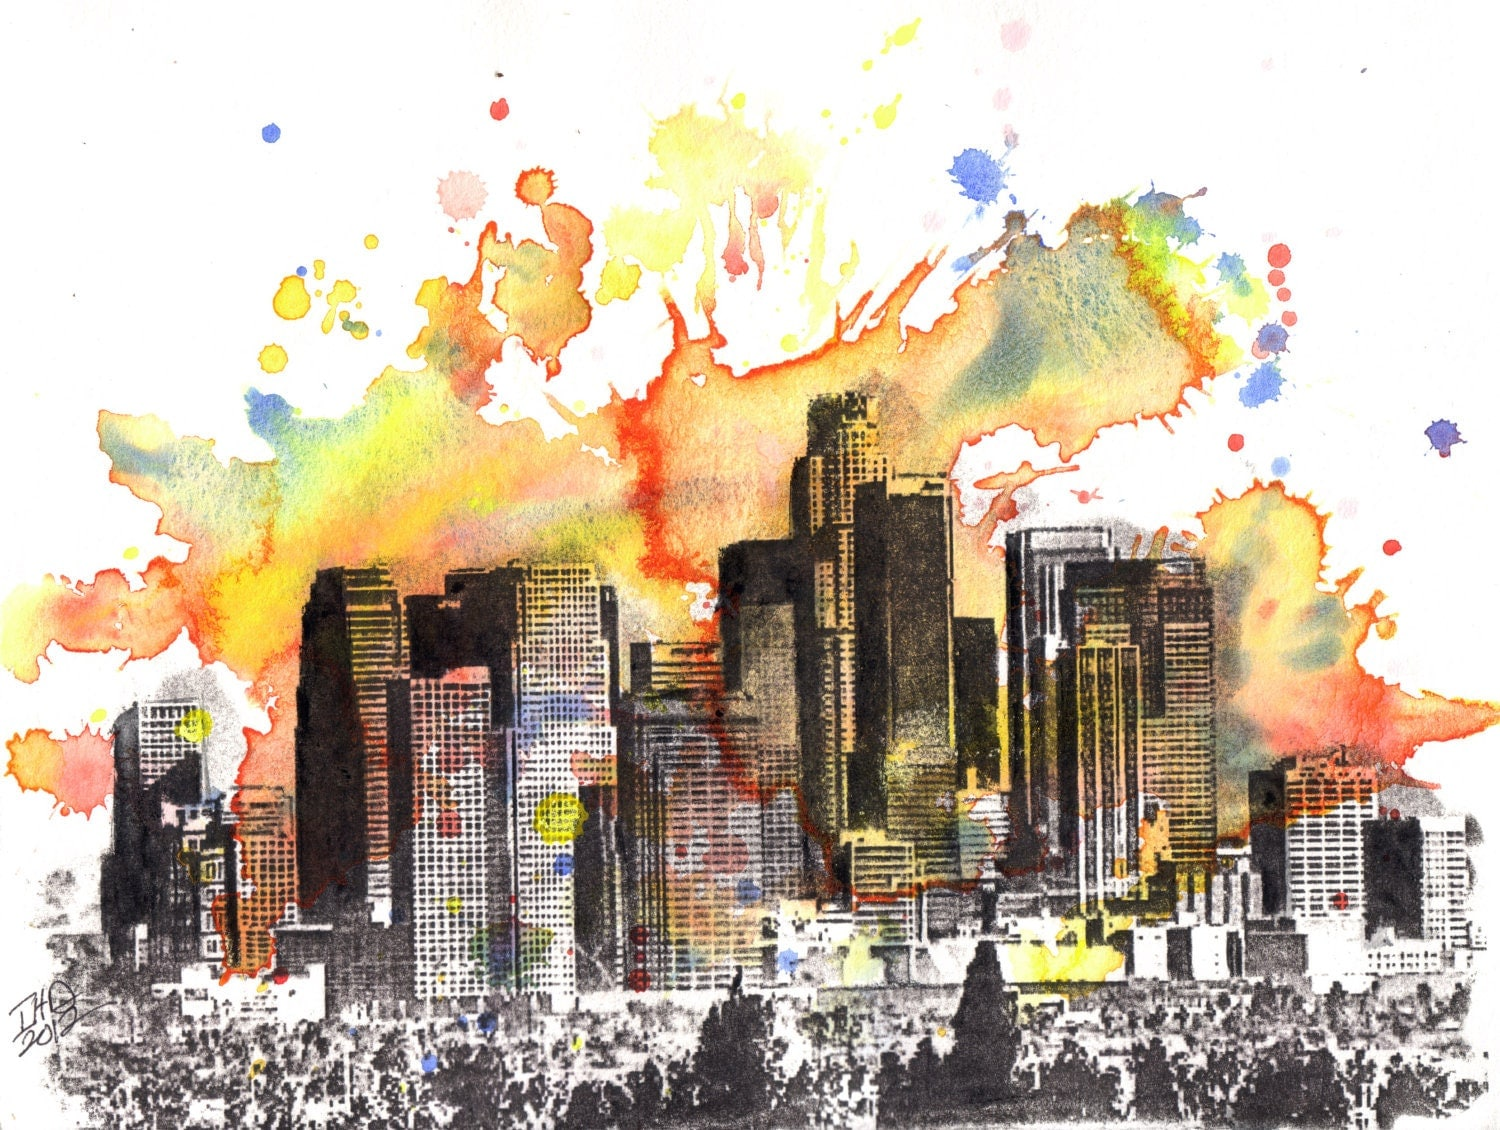 Color art printing anchorage - Los Angeles Skyline Art Print Poster From Original Watercolor Painting 13 X 19 Los Angeles Art Print